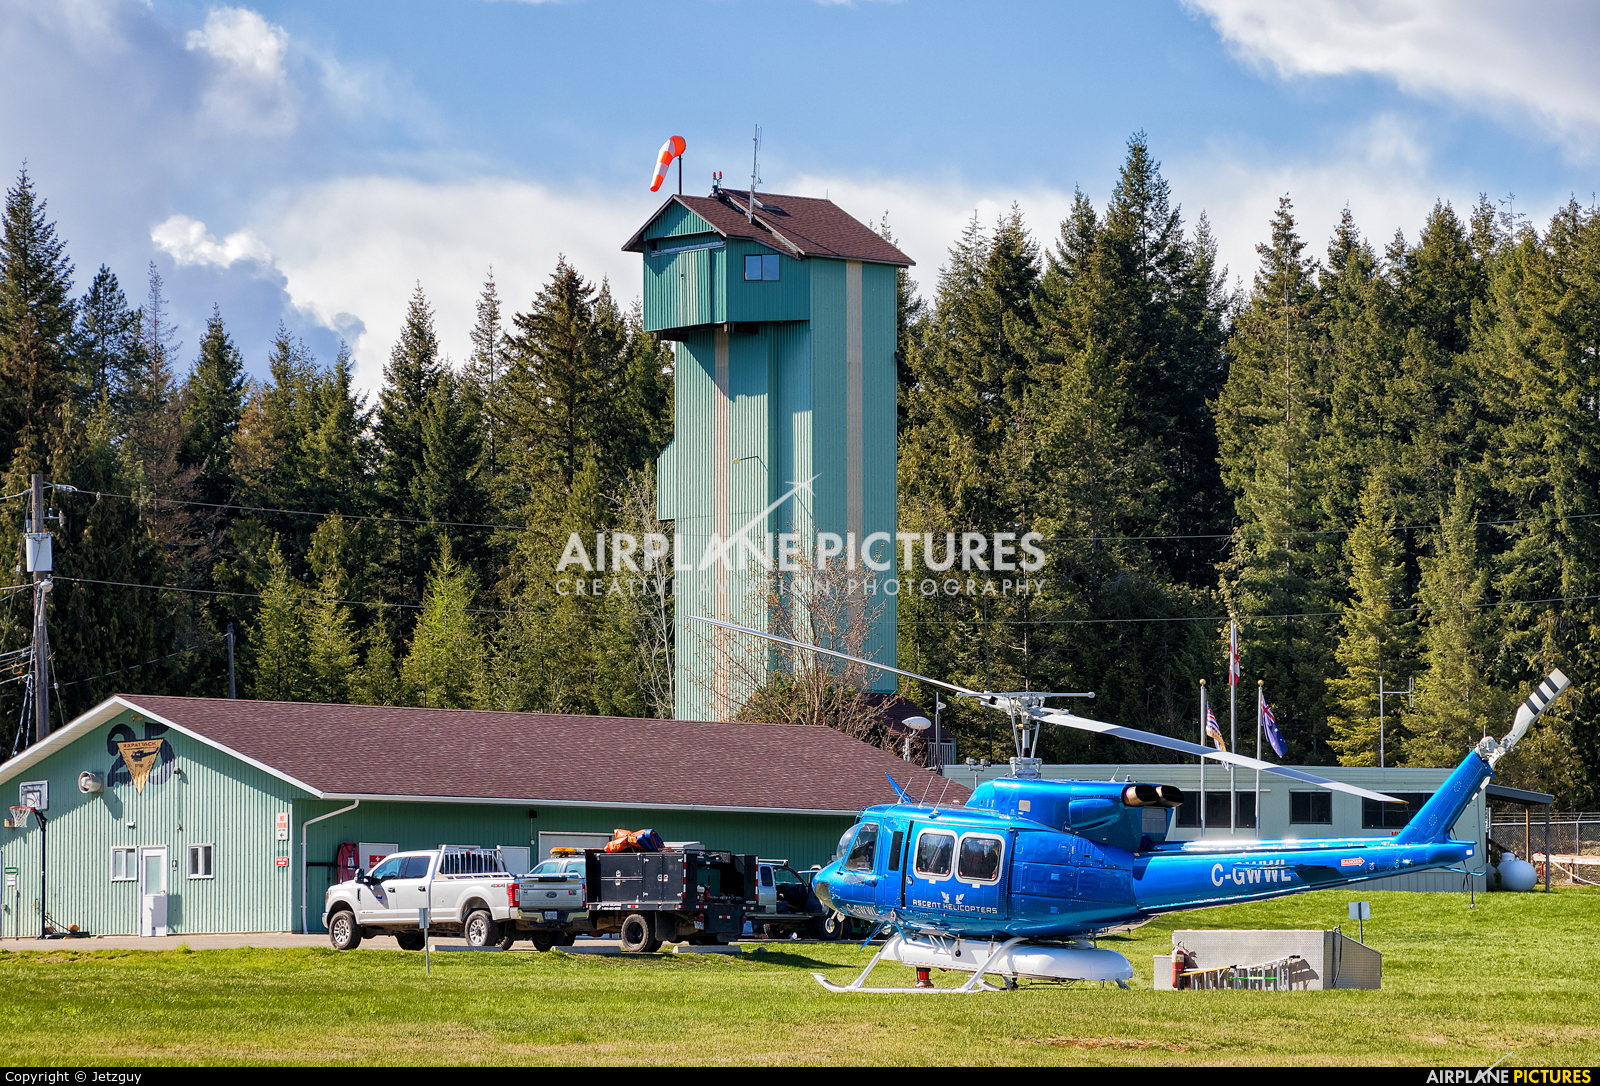 Ascent Helicopters C-GWWL aircraft at Salmon Arm, BC